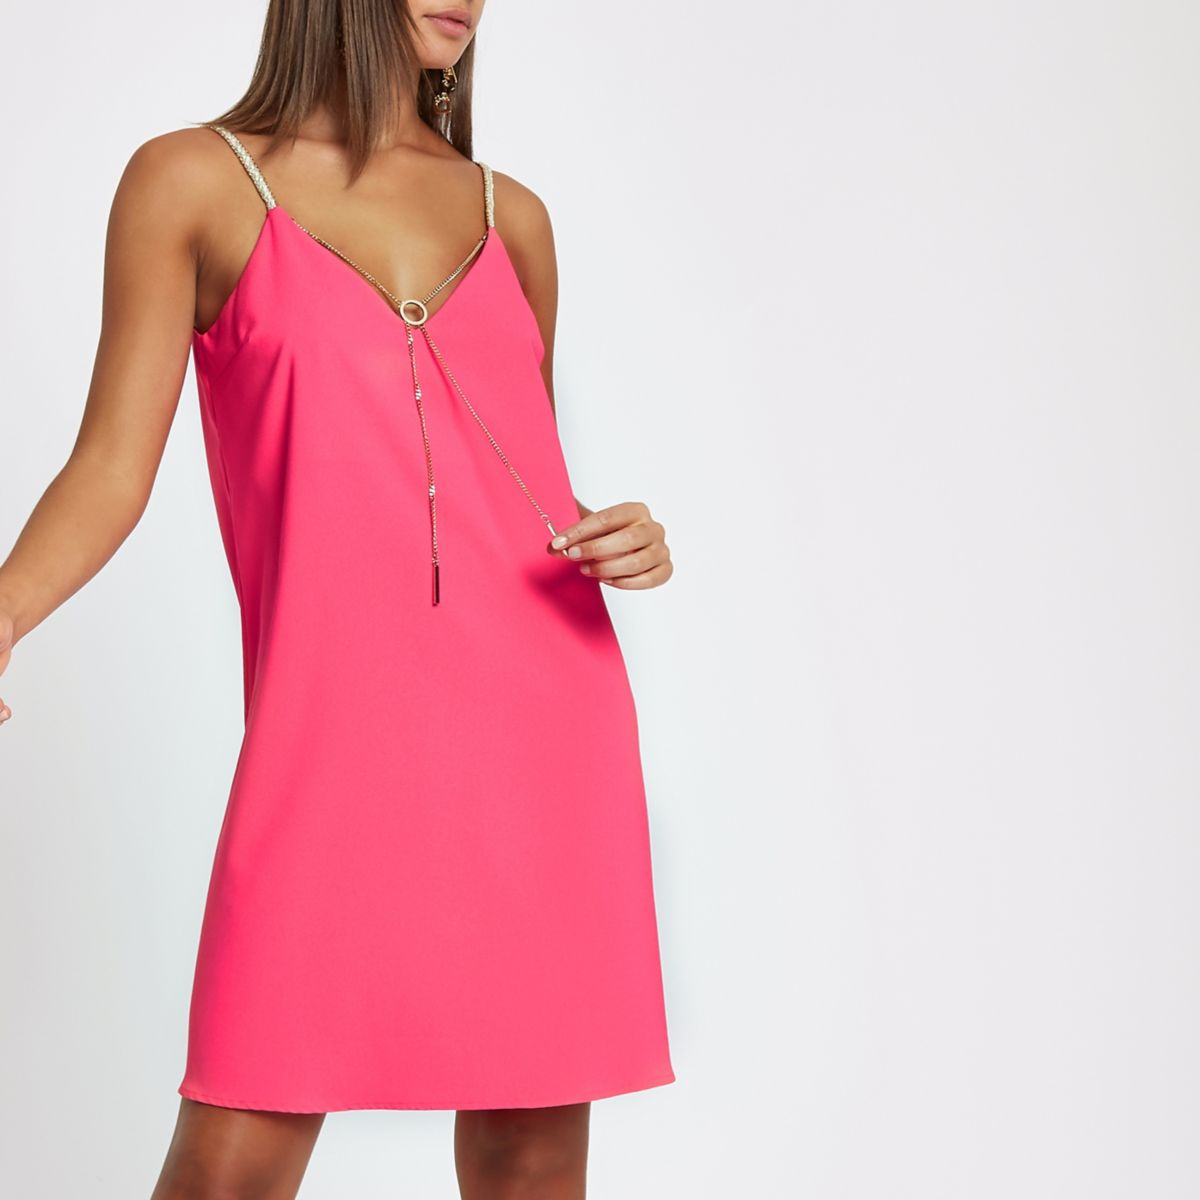 Pink braided strap chain front slip dress